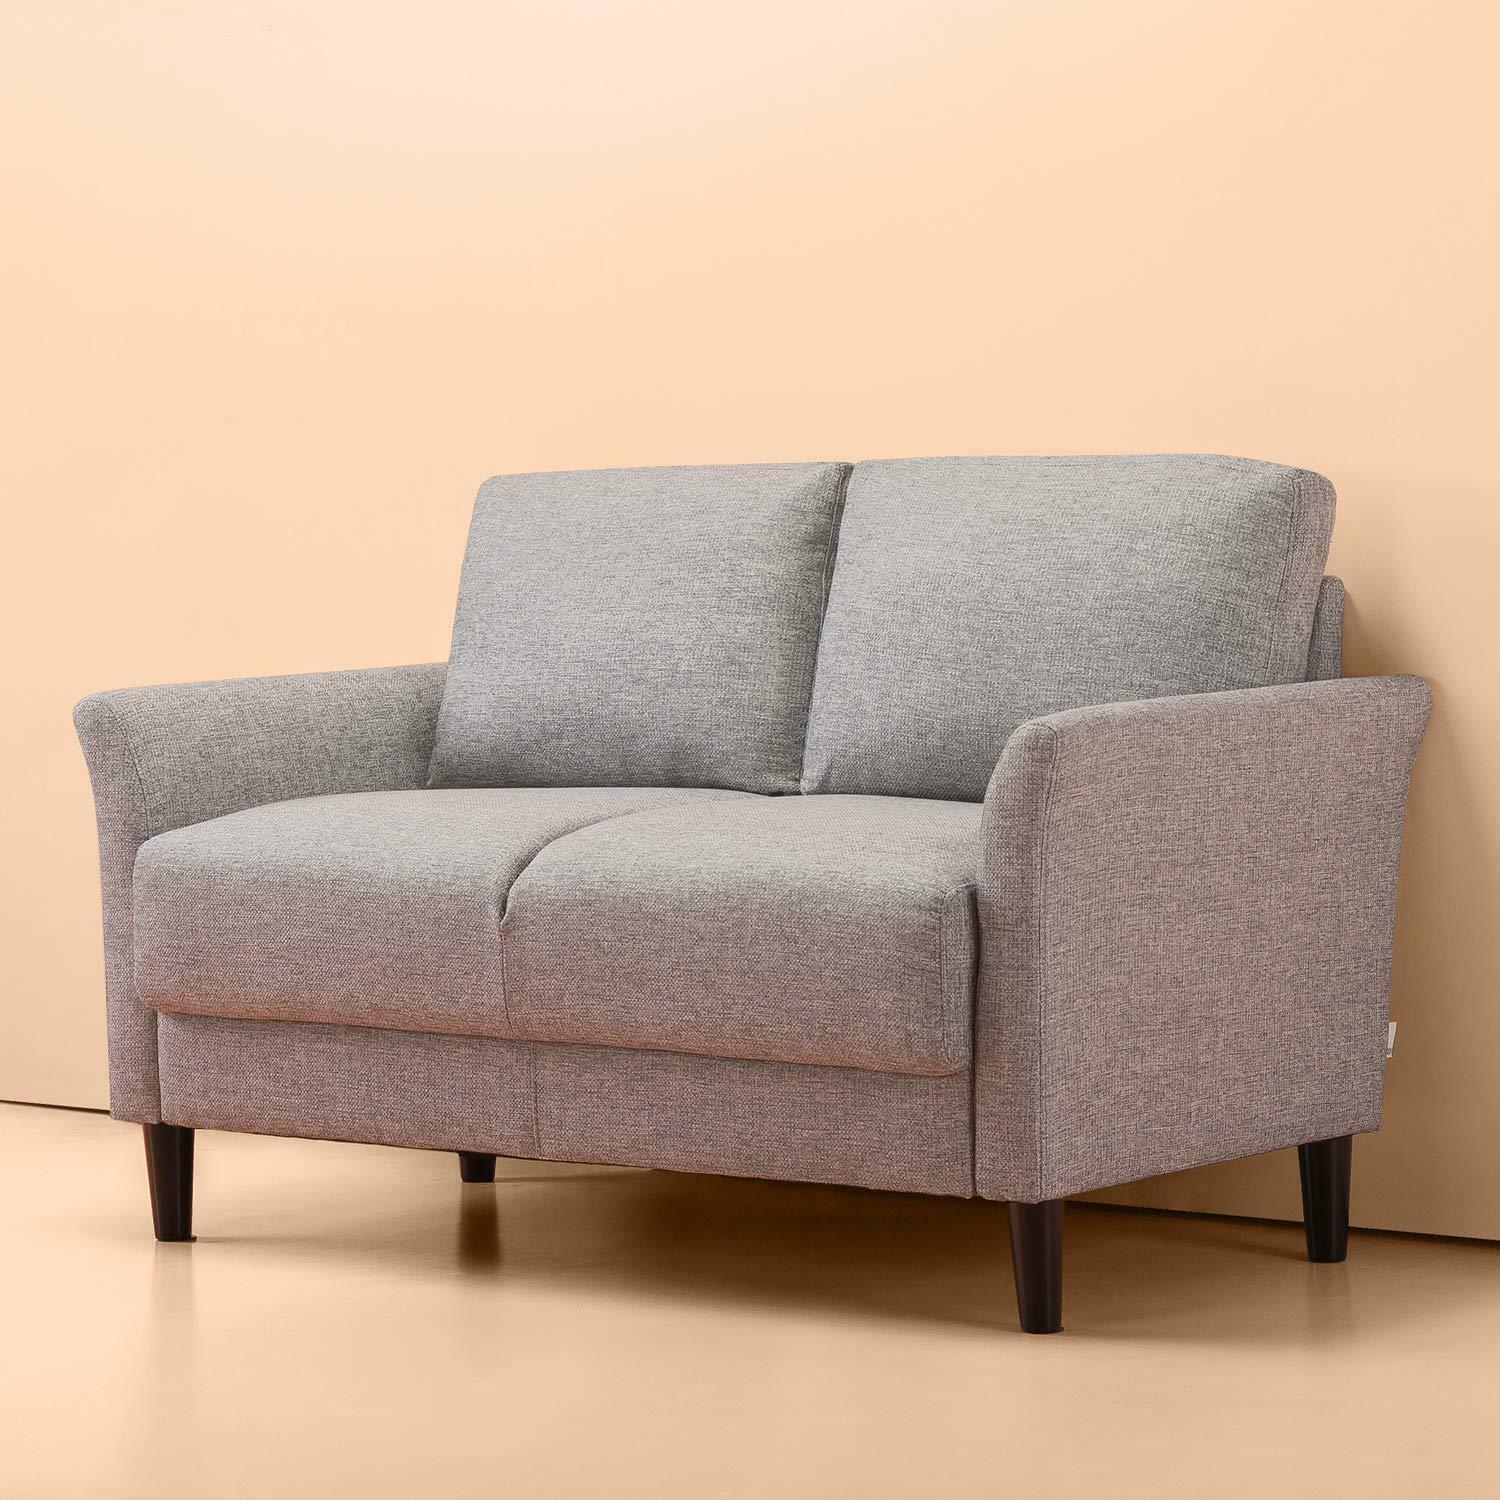 Sofa Couch Gray Loveseat Modern Style Grey Bedroom Porch Dorm Room Chair Cushion For Sale Online